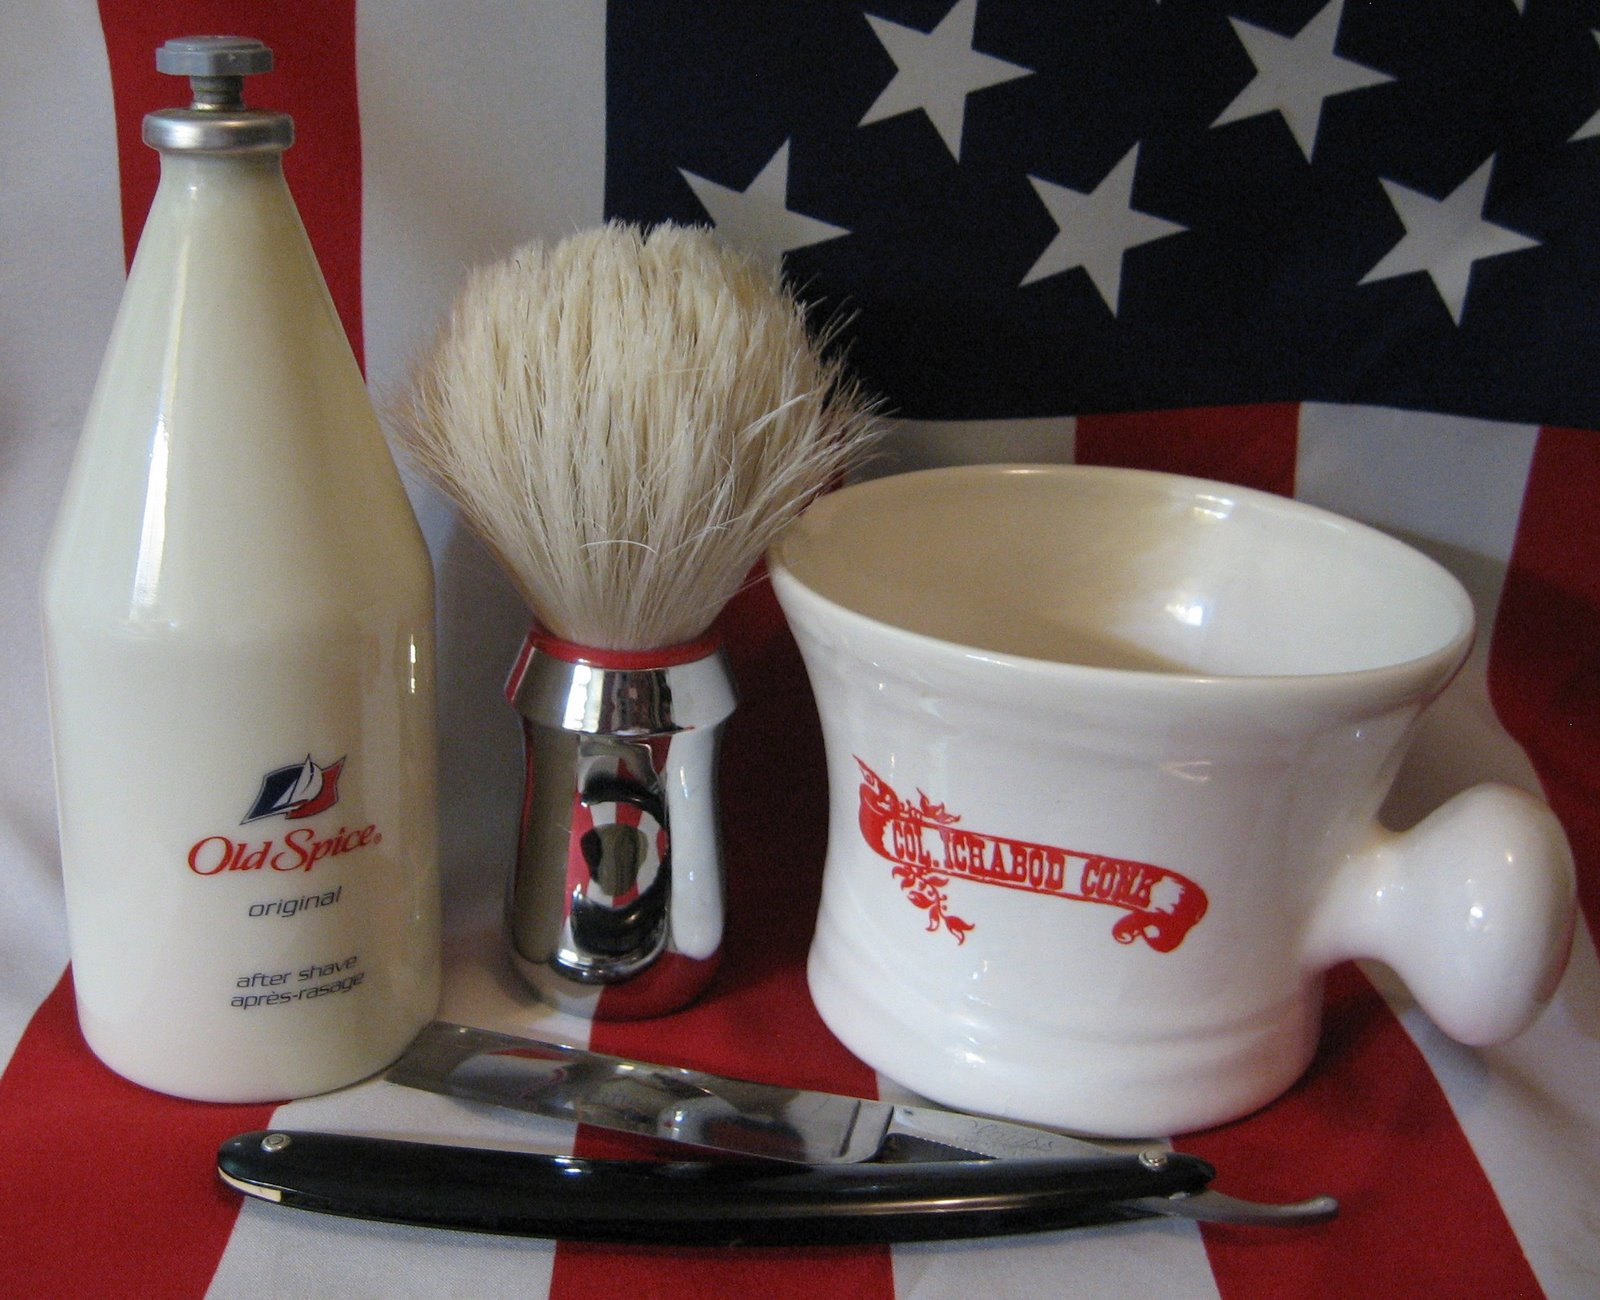 Shave of the Day – Amber and Old Spice « gdpalmer